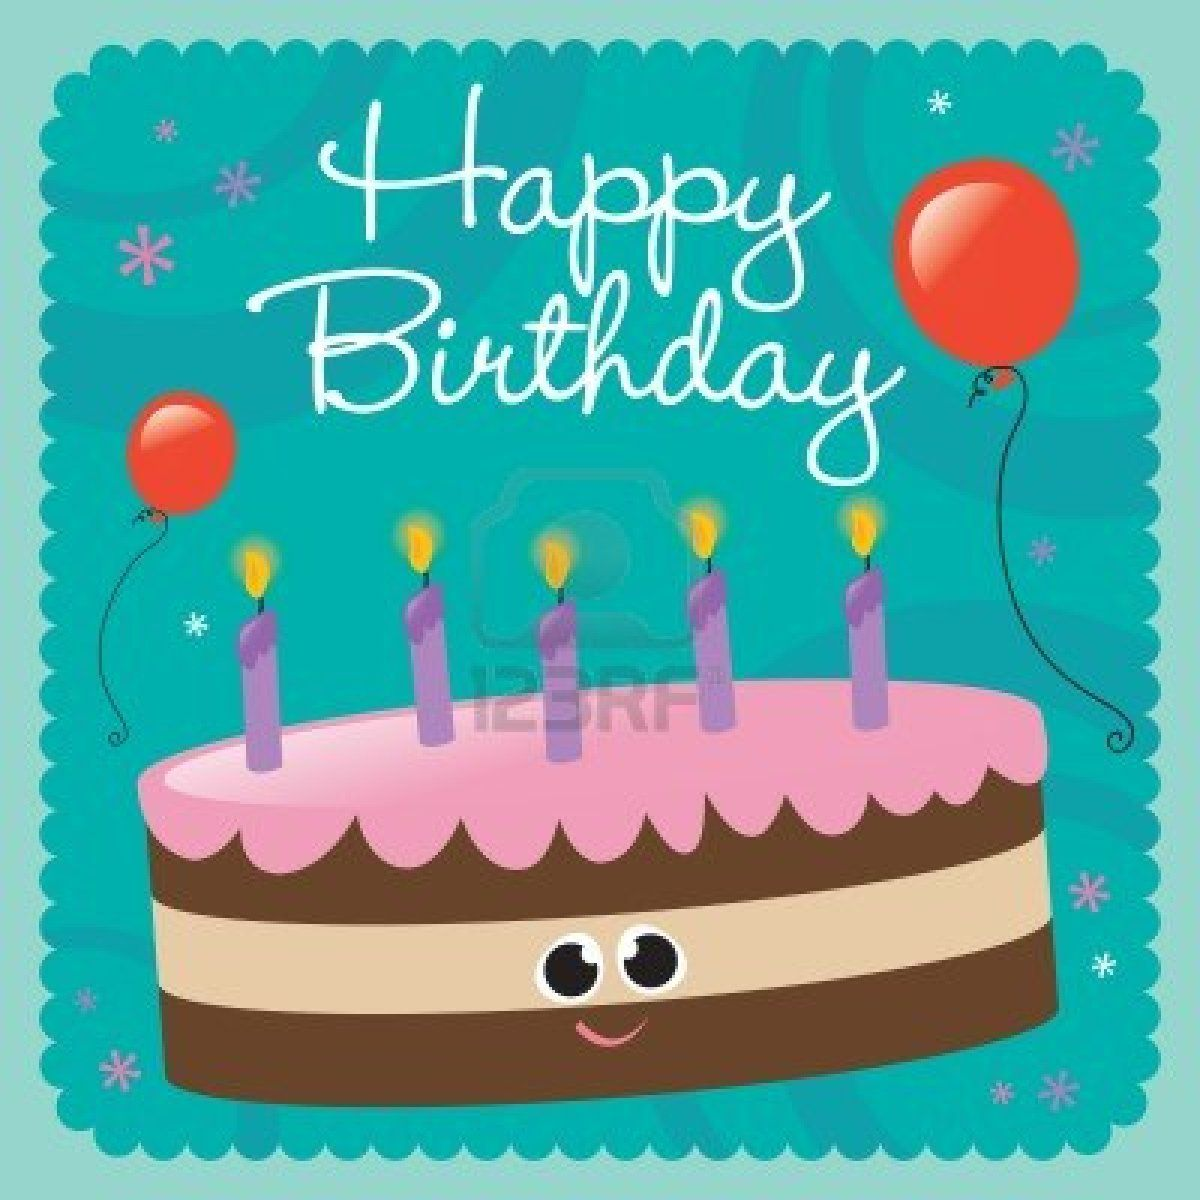 Happy Birthday Cards 6 Coloring Kids – Greetings for Birthday Cards